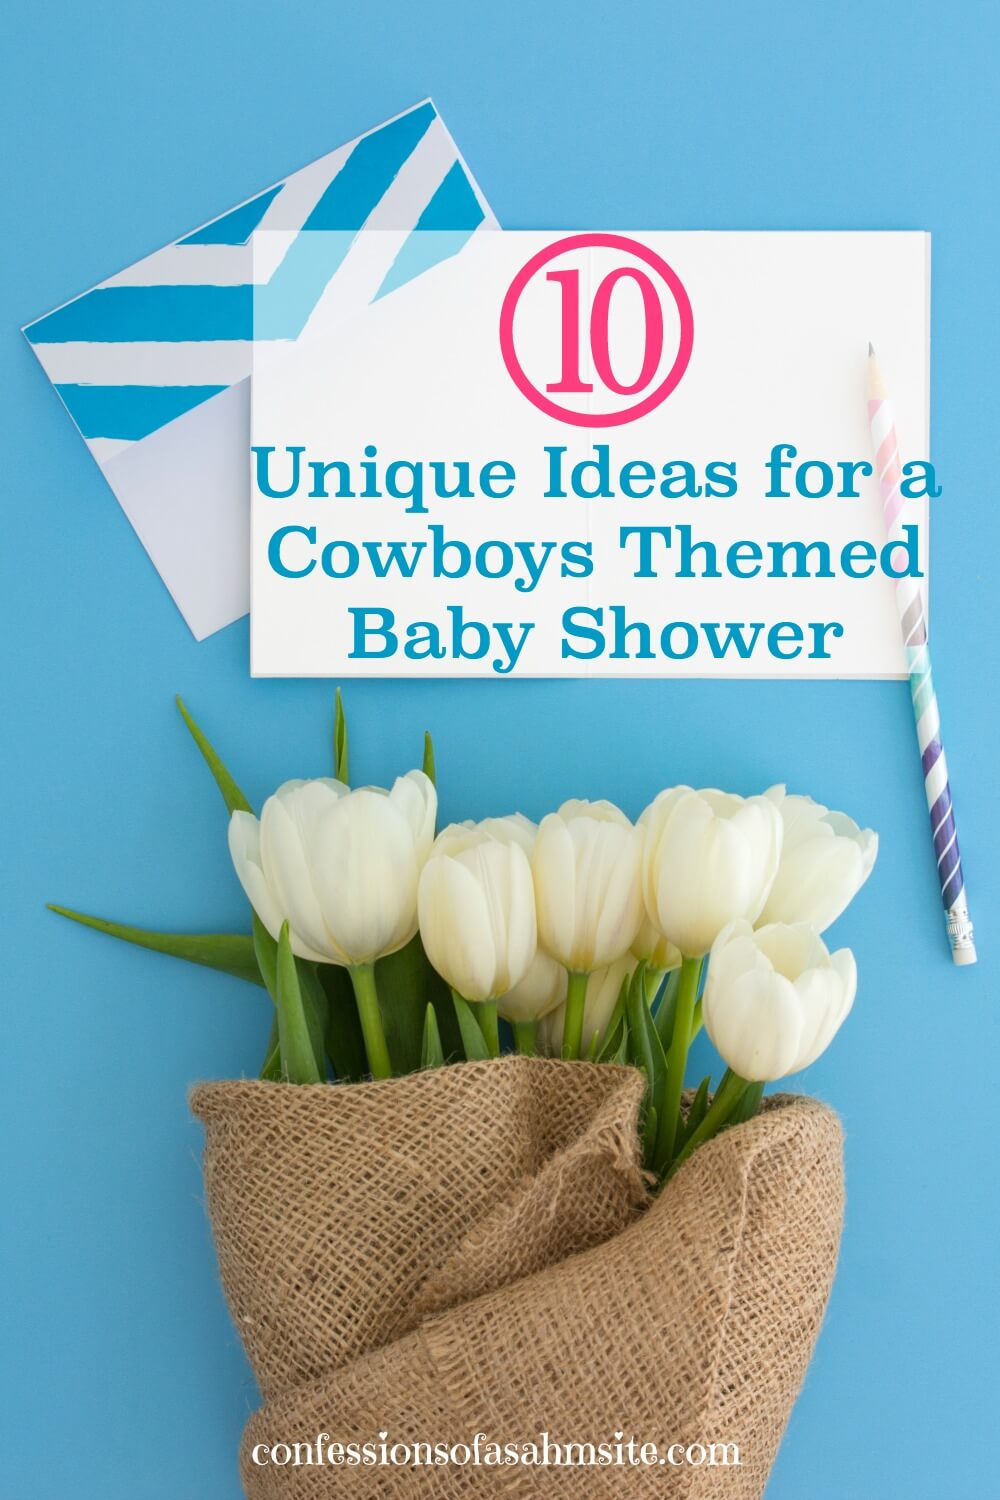 10 Unique Ideas for a Cowboys Themed Baby Shower